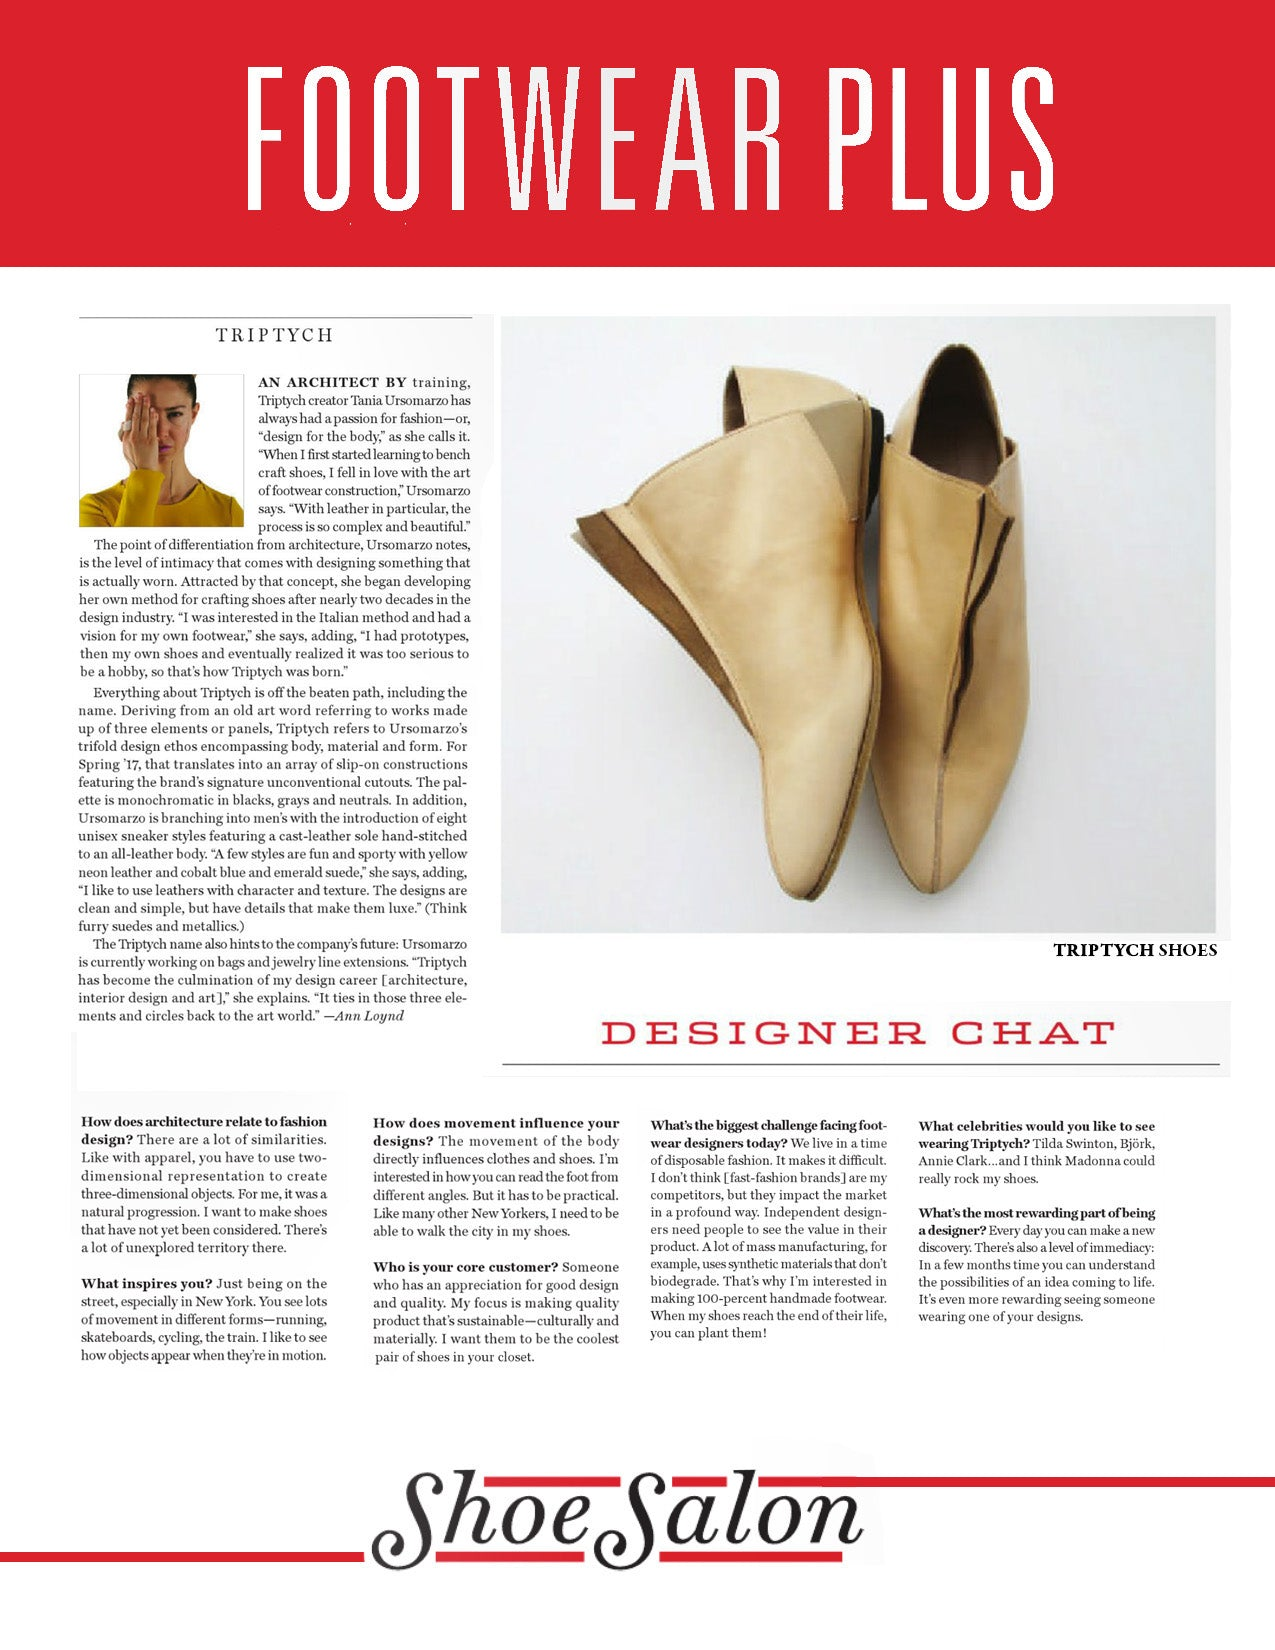 TRIPTYCH DESIGNER CHAT WITH FOOTWEAR PLUS MAGAZINE